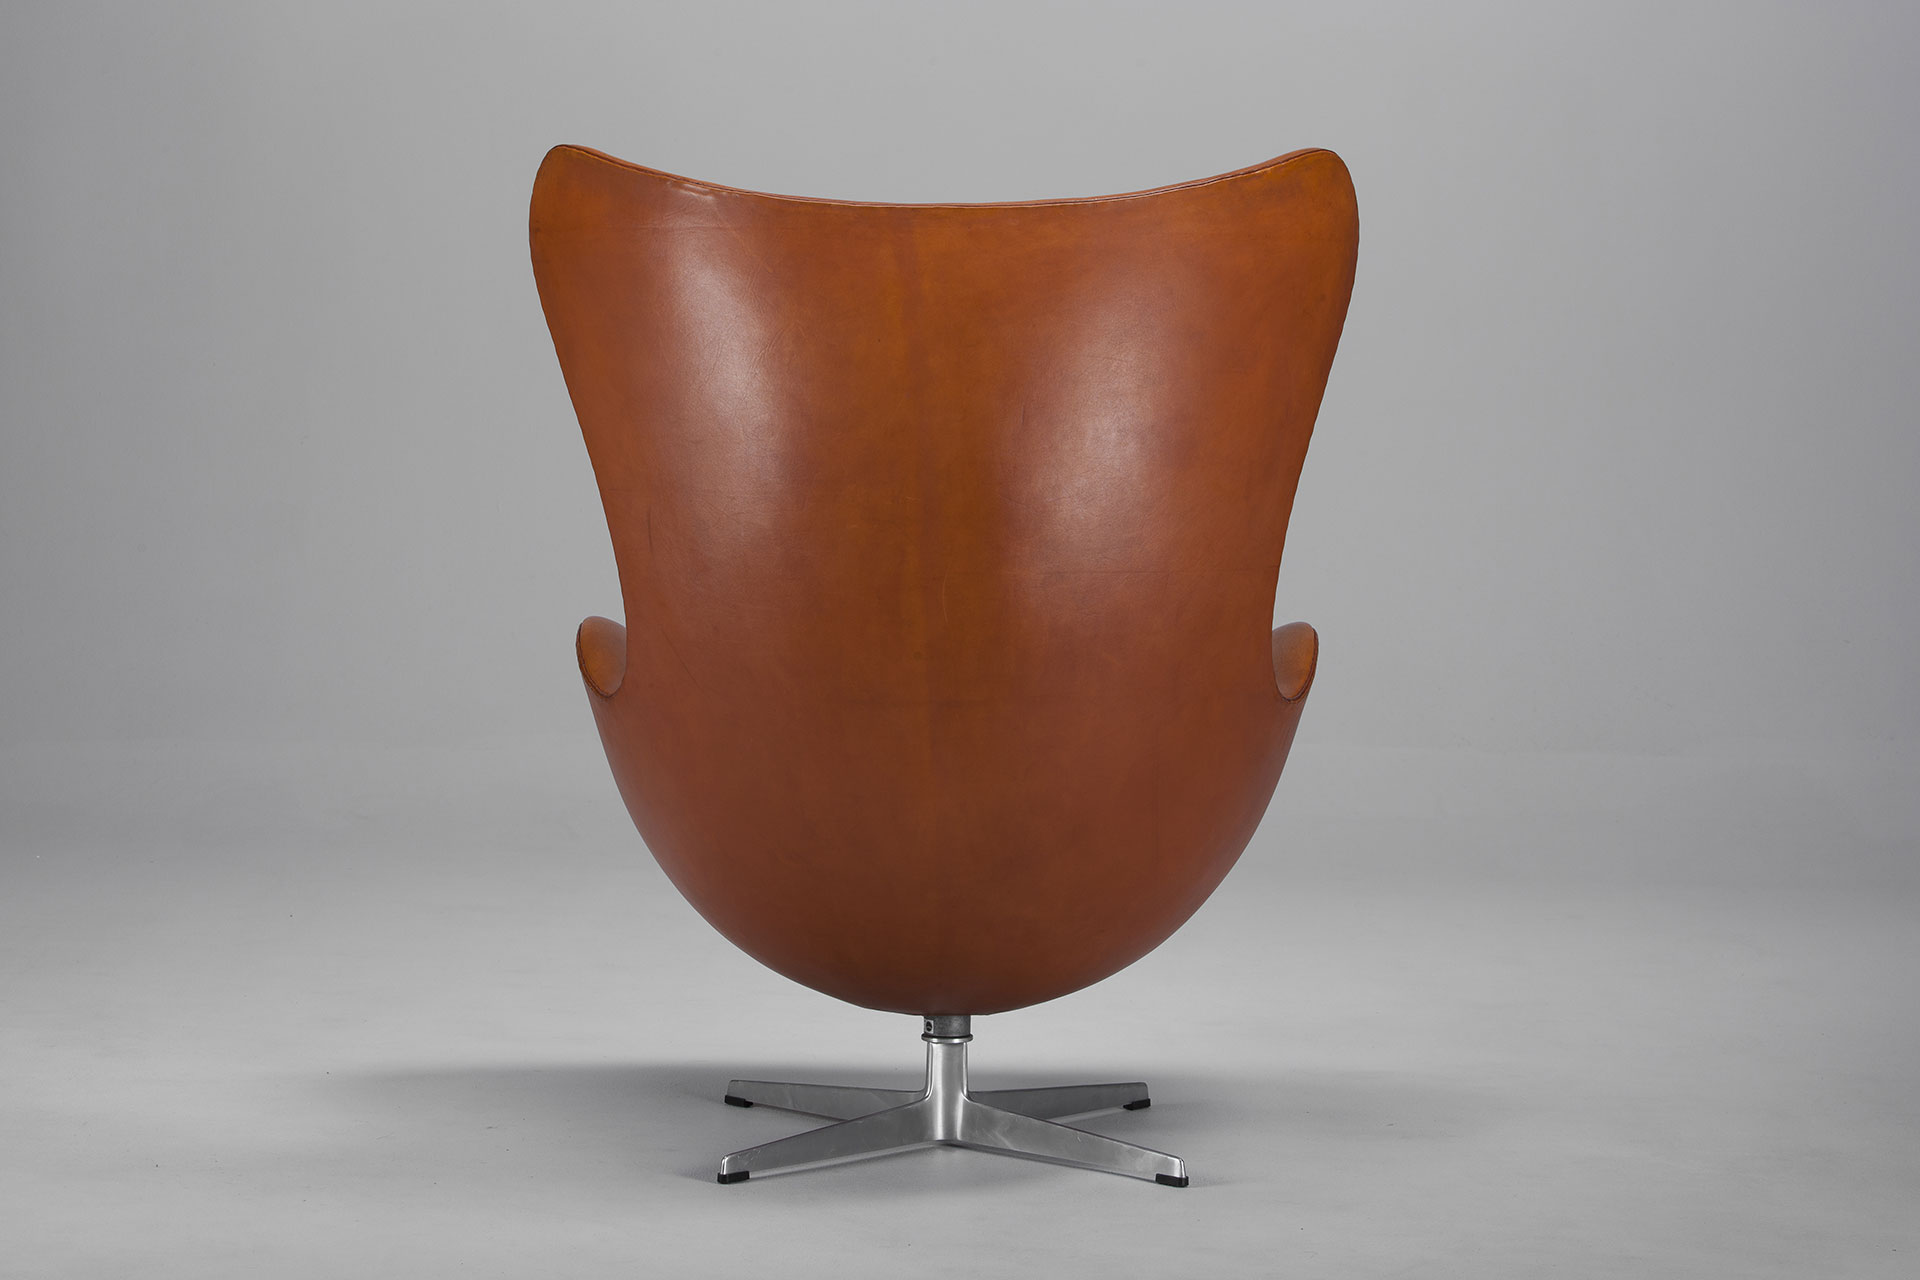 arne jacobsen egg chair original. Black Bedroom Furniture Sets. Home Design Ideas